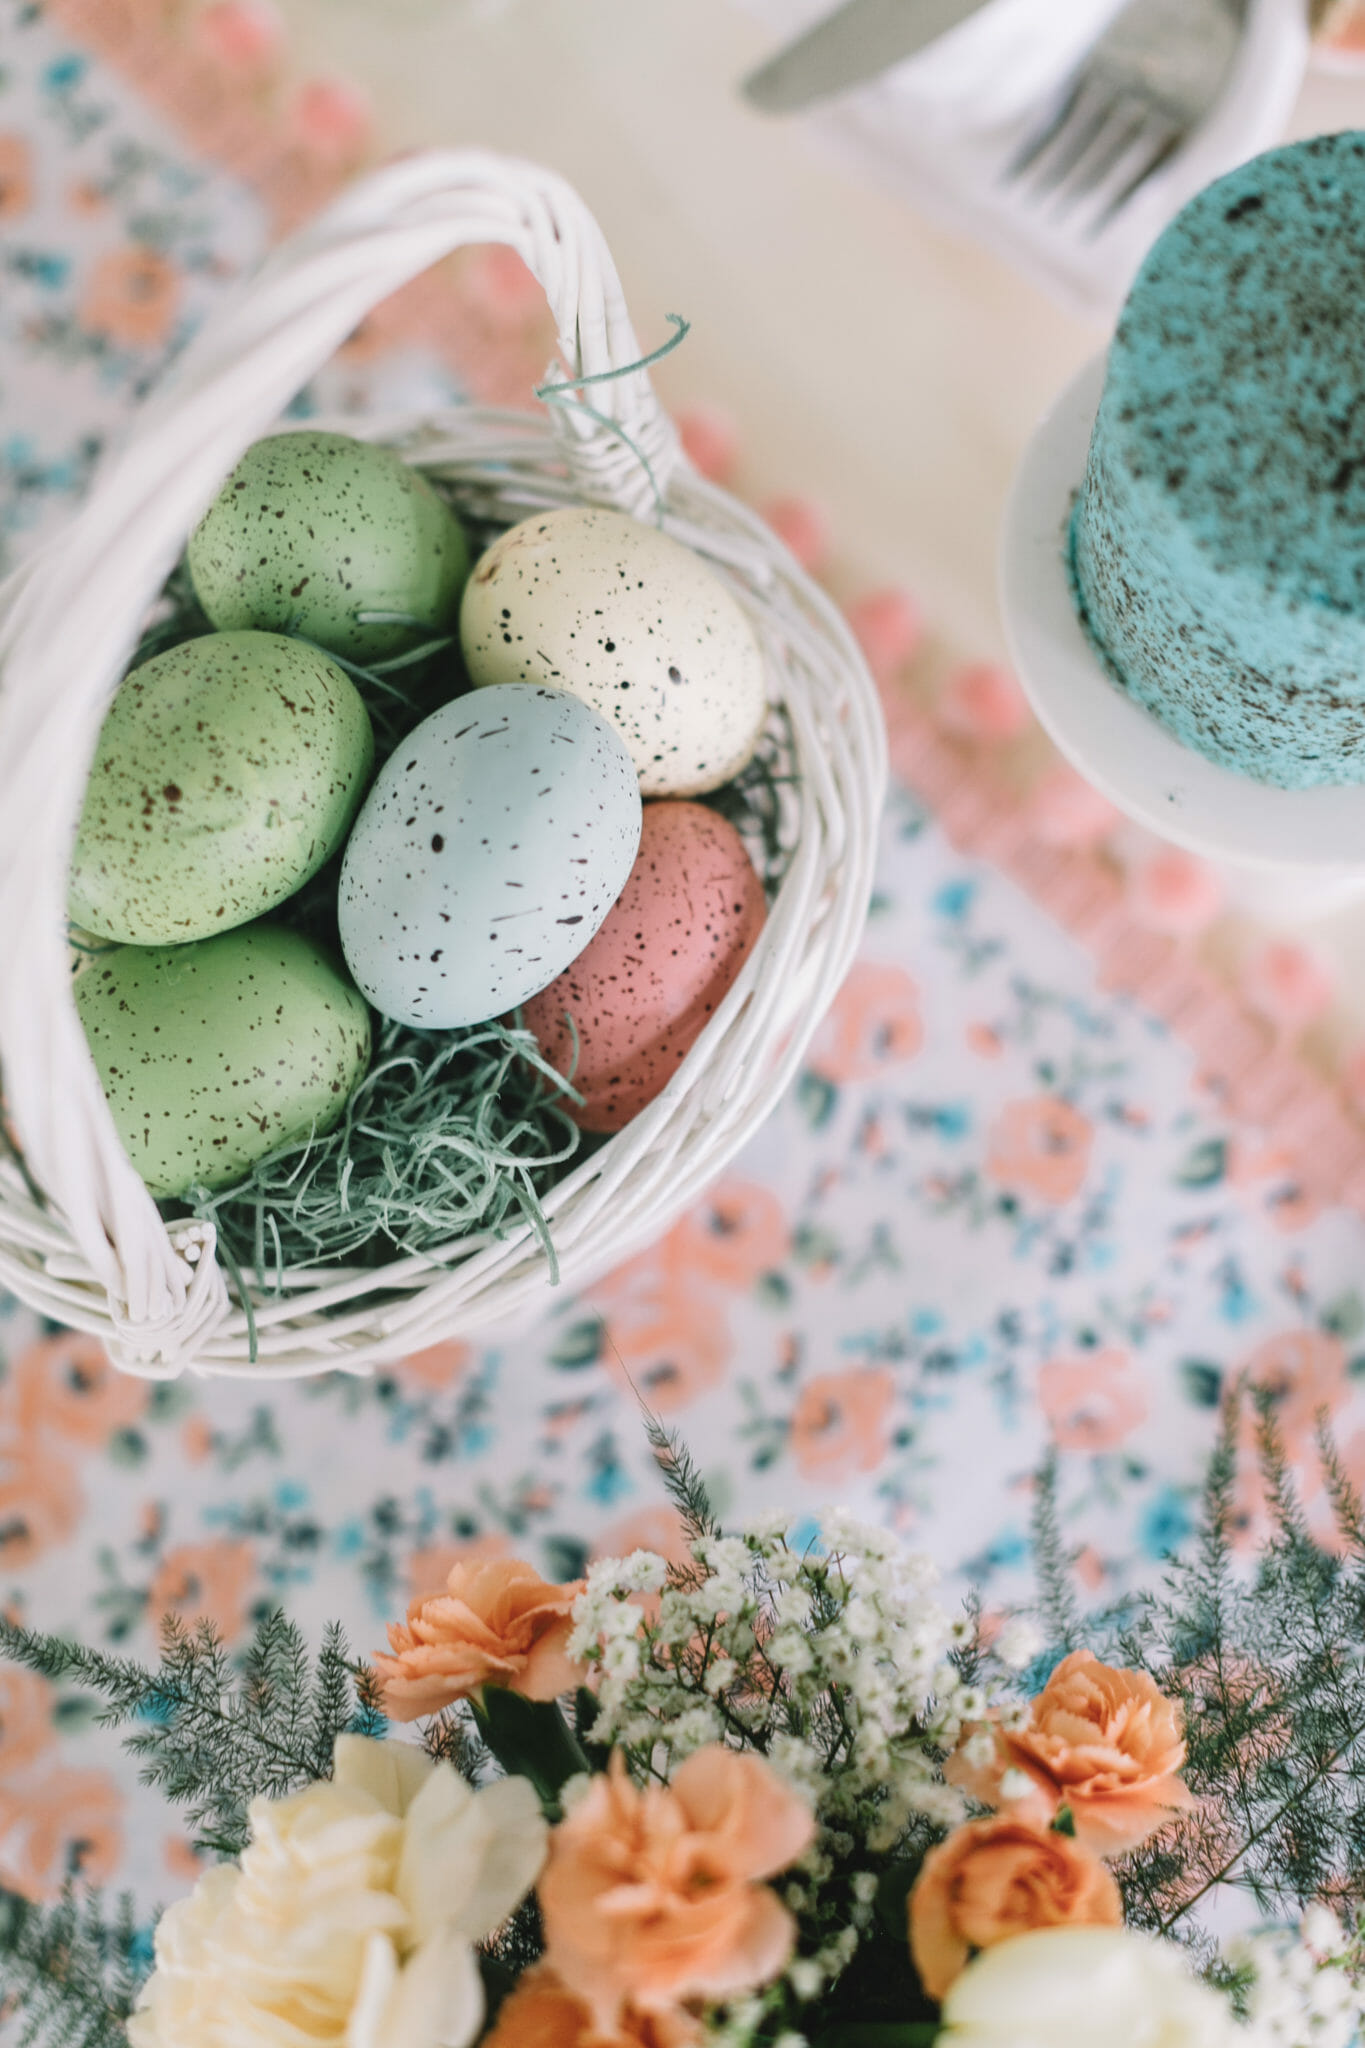 How to Create a Spring Tablescape | tablescape ideas | spring table decor | spring decorating ideas || JennyCookies.com #springtable #tablescape #springdecor